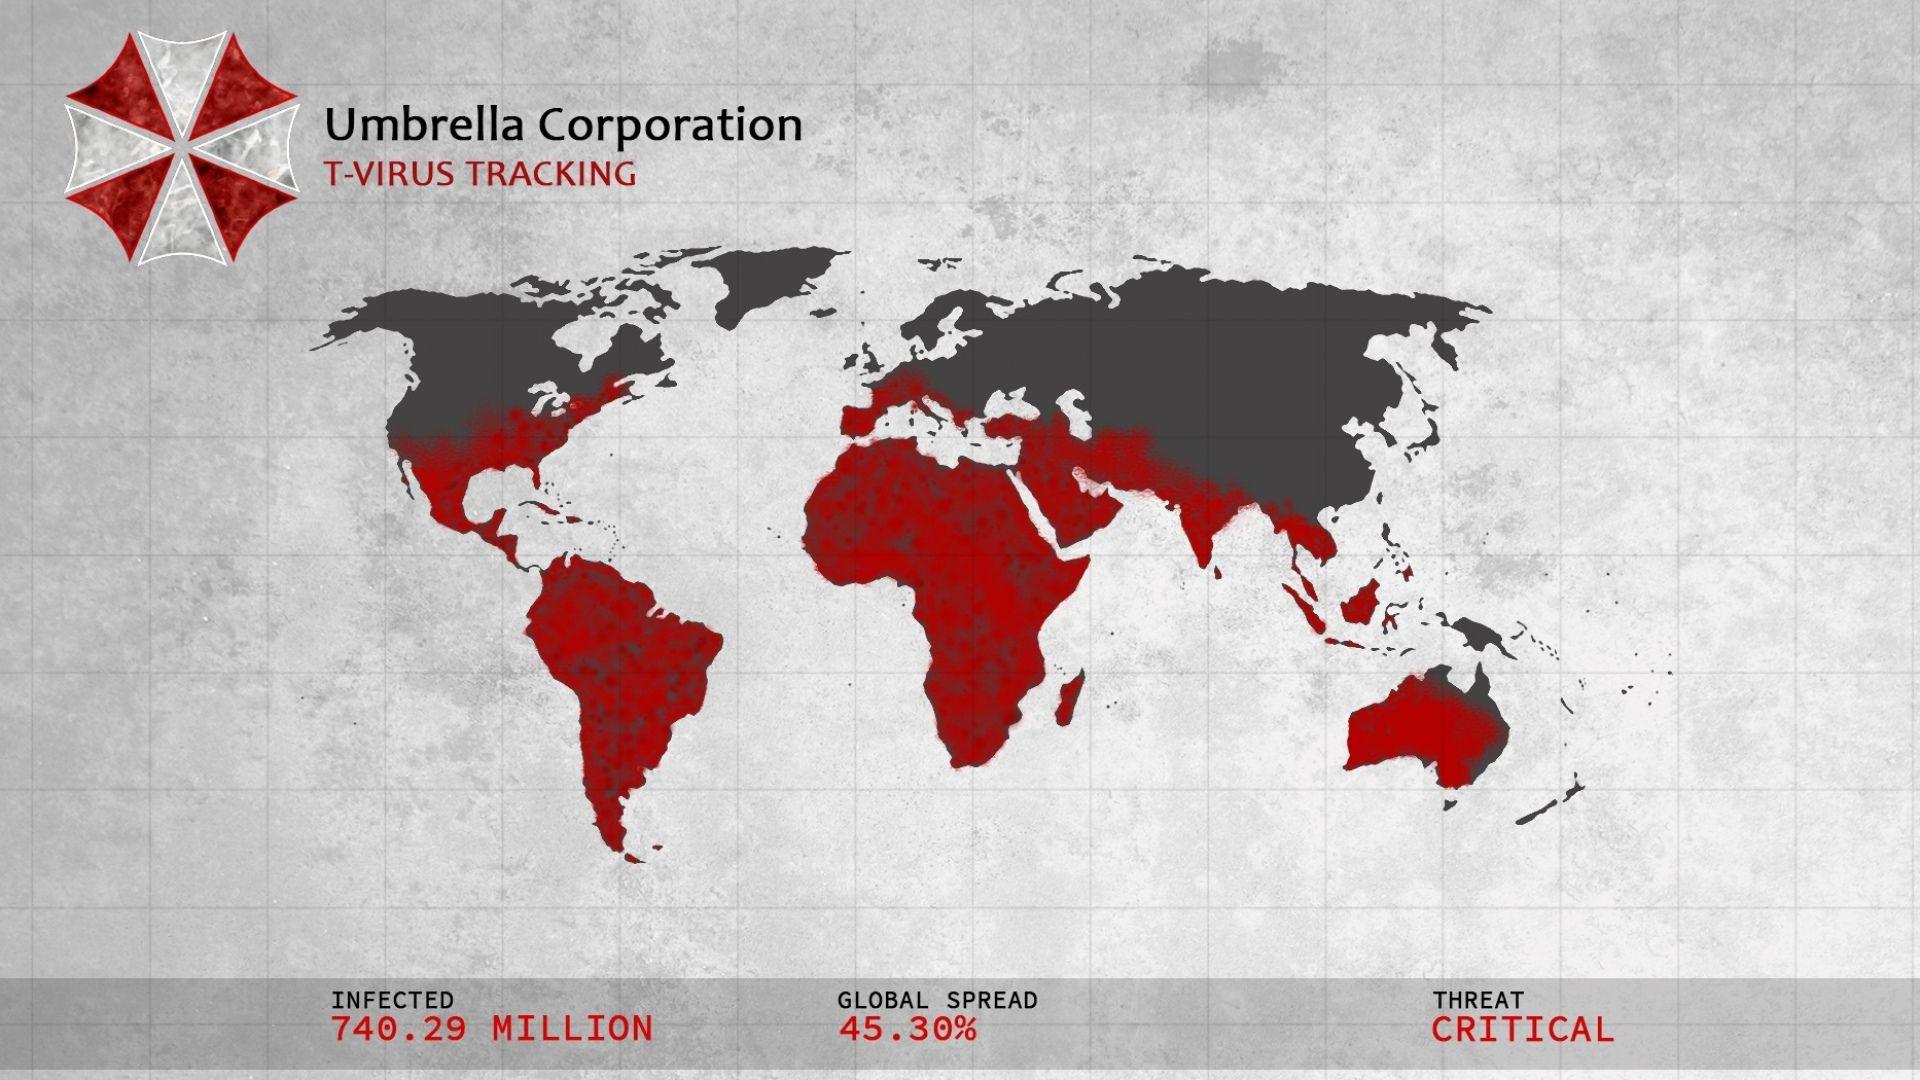 Resident Evil Saga - Umbrella corp Virus T Tracking Infected Population World Map